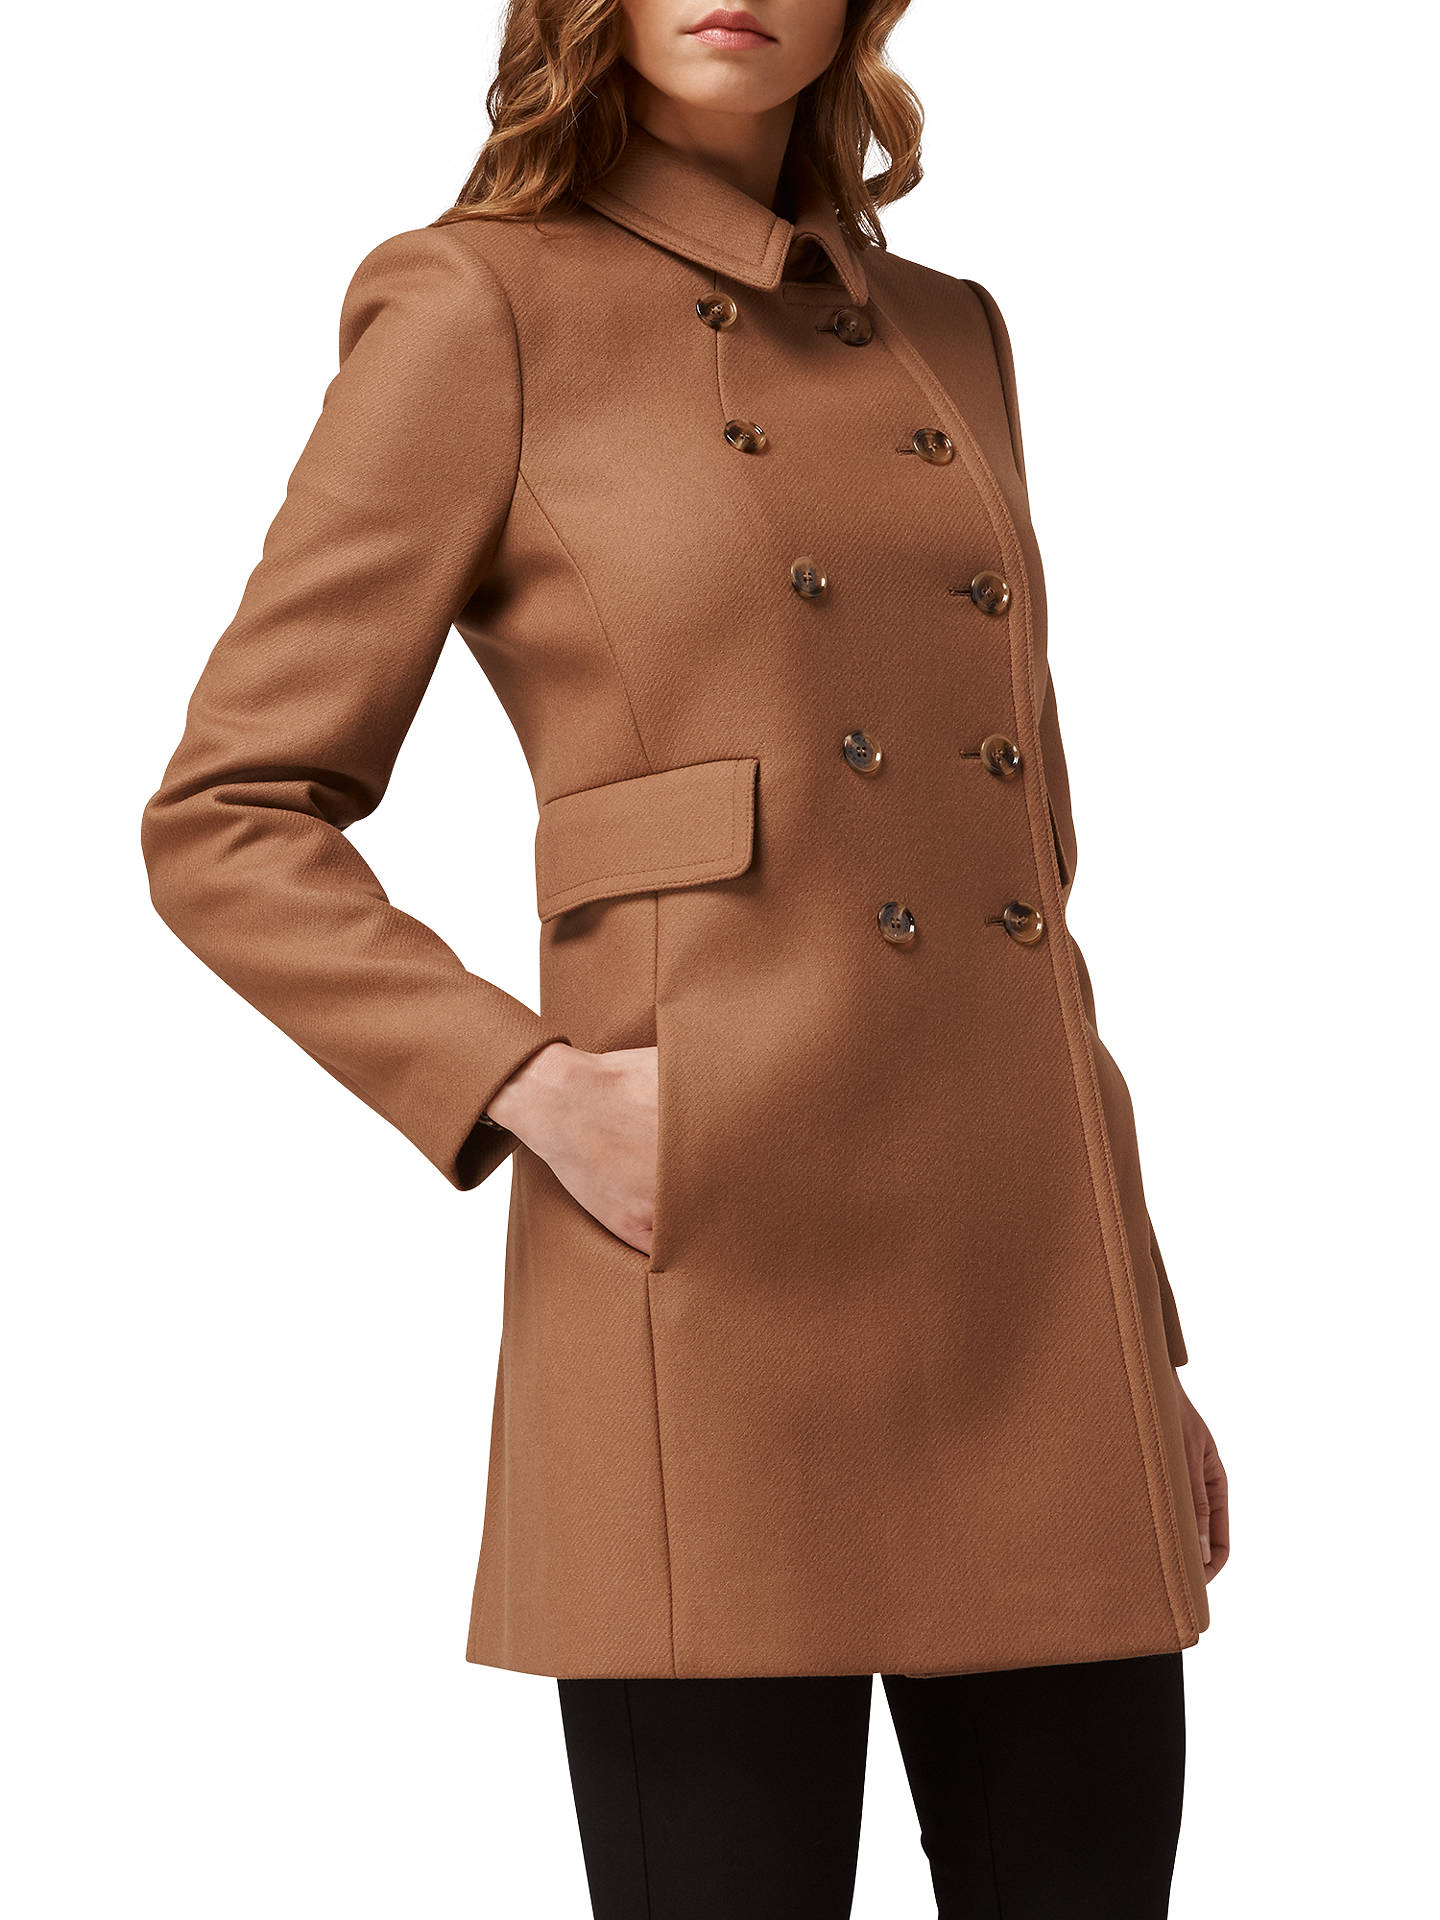 60% clearance novel style diversified latest designs L.K. Bennett Felli Short Military Coat at John Lewis & Partners